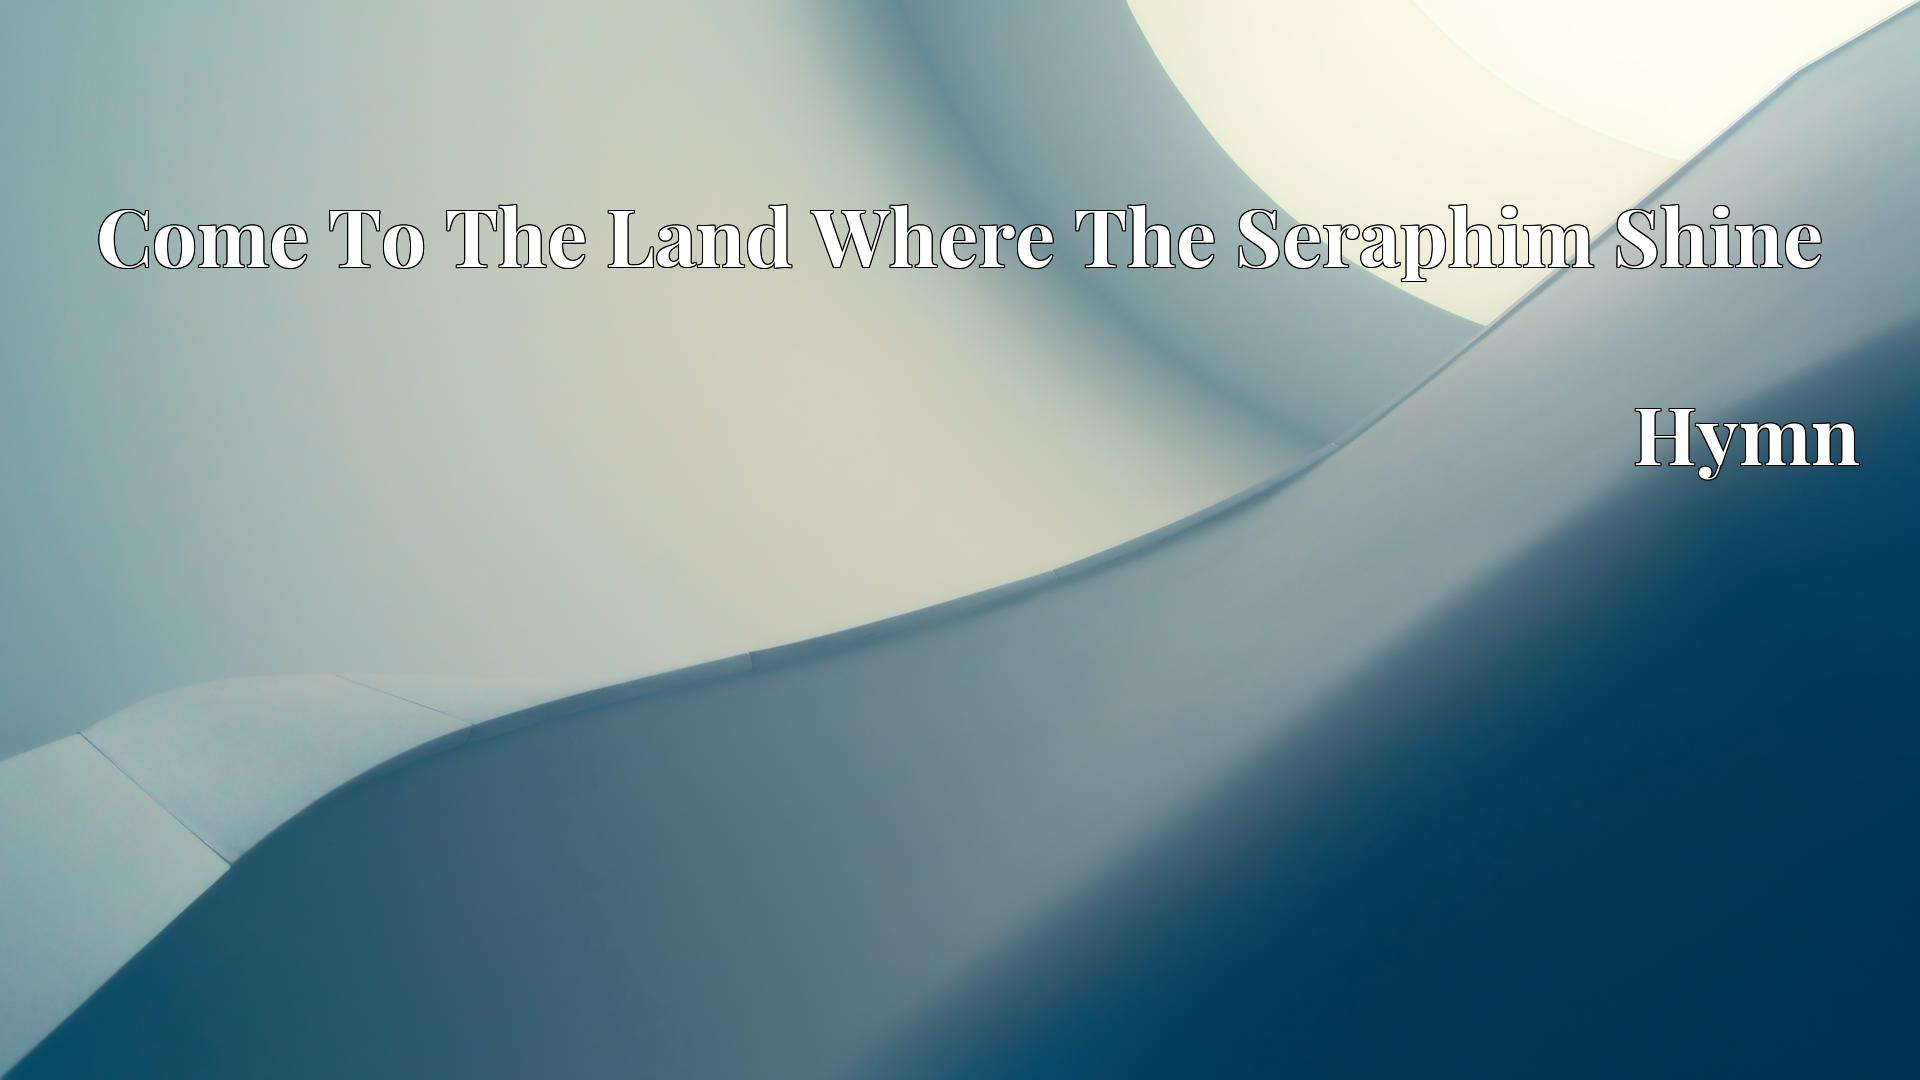 Come To The Land Where The Seraphim Shine - Hymn